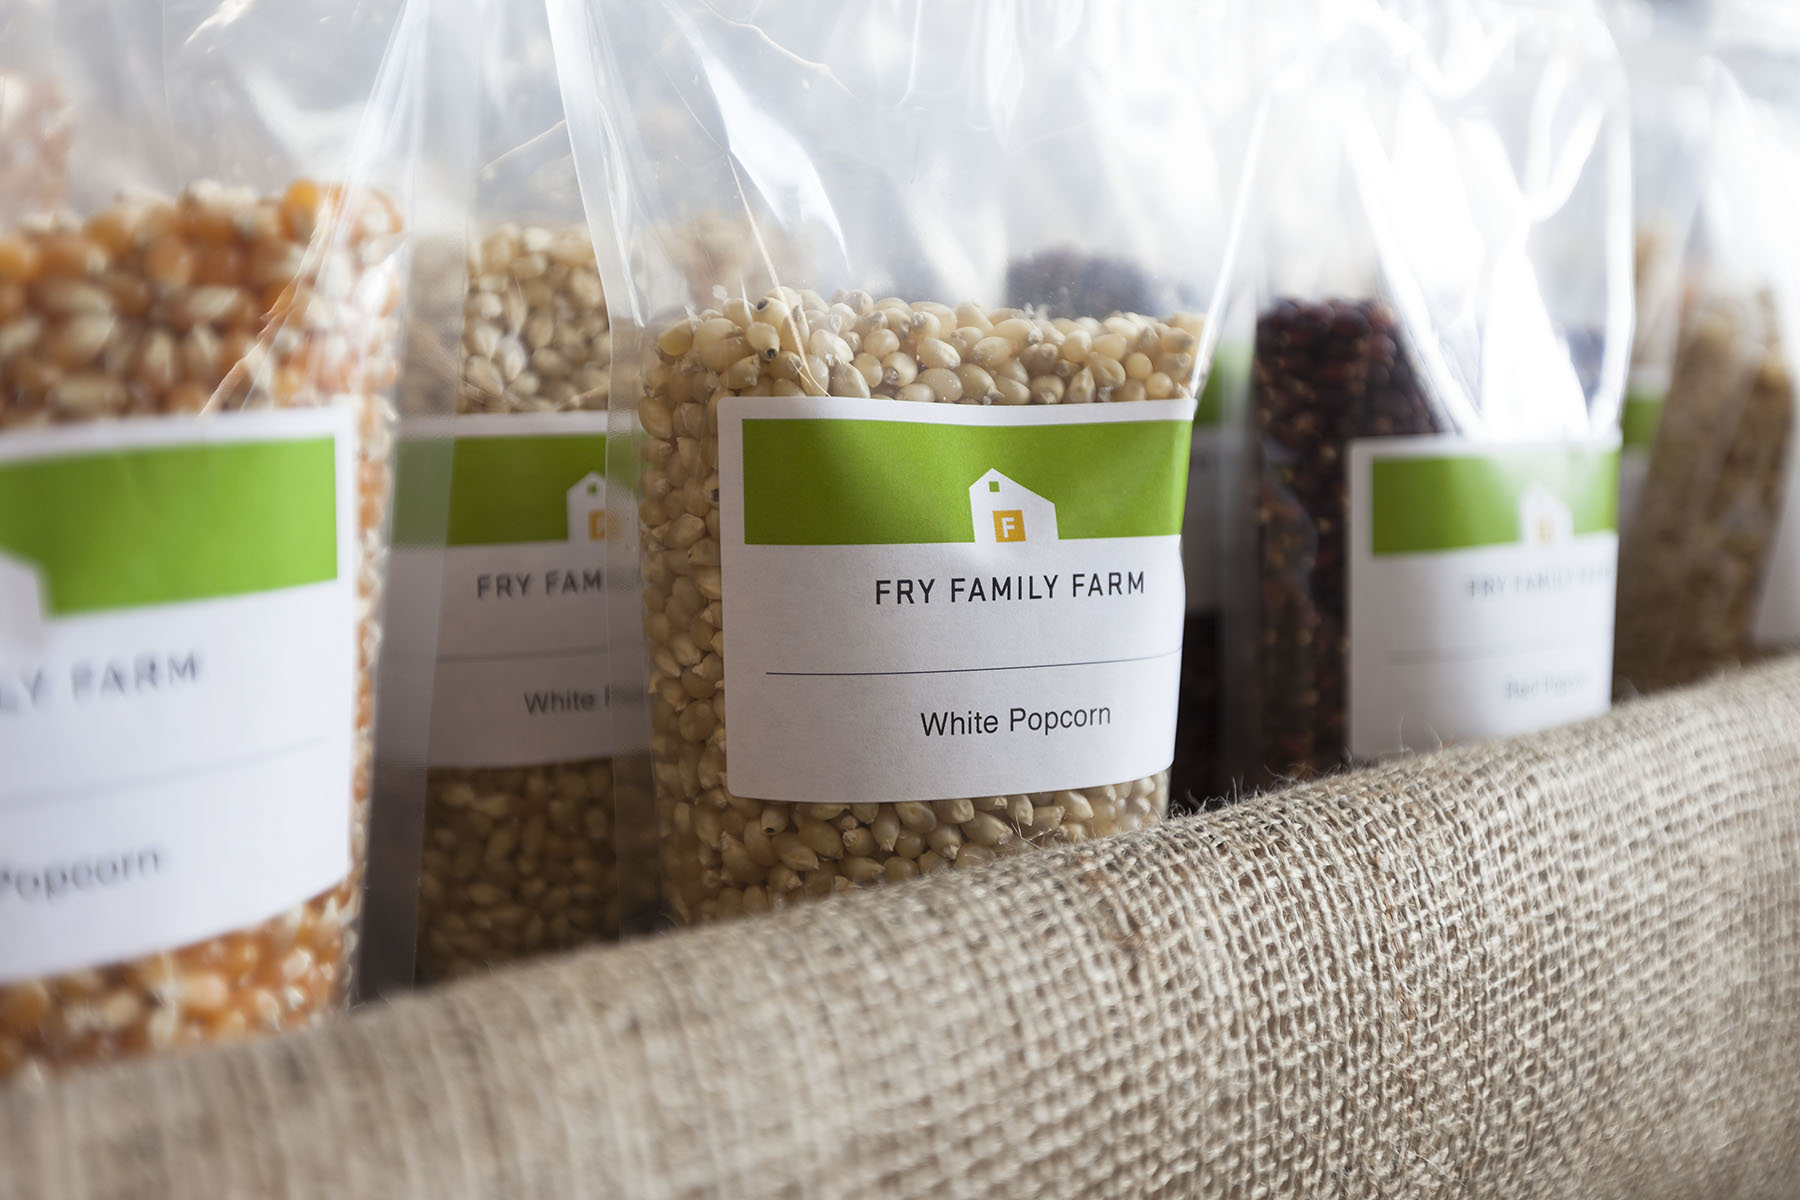 Mark Mularz from Fetch Design designed packaging for Fry Family Farm of Ashland, Phoenix, Talent and Medford.